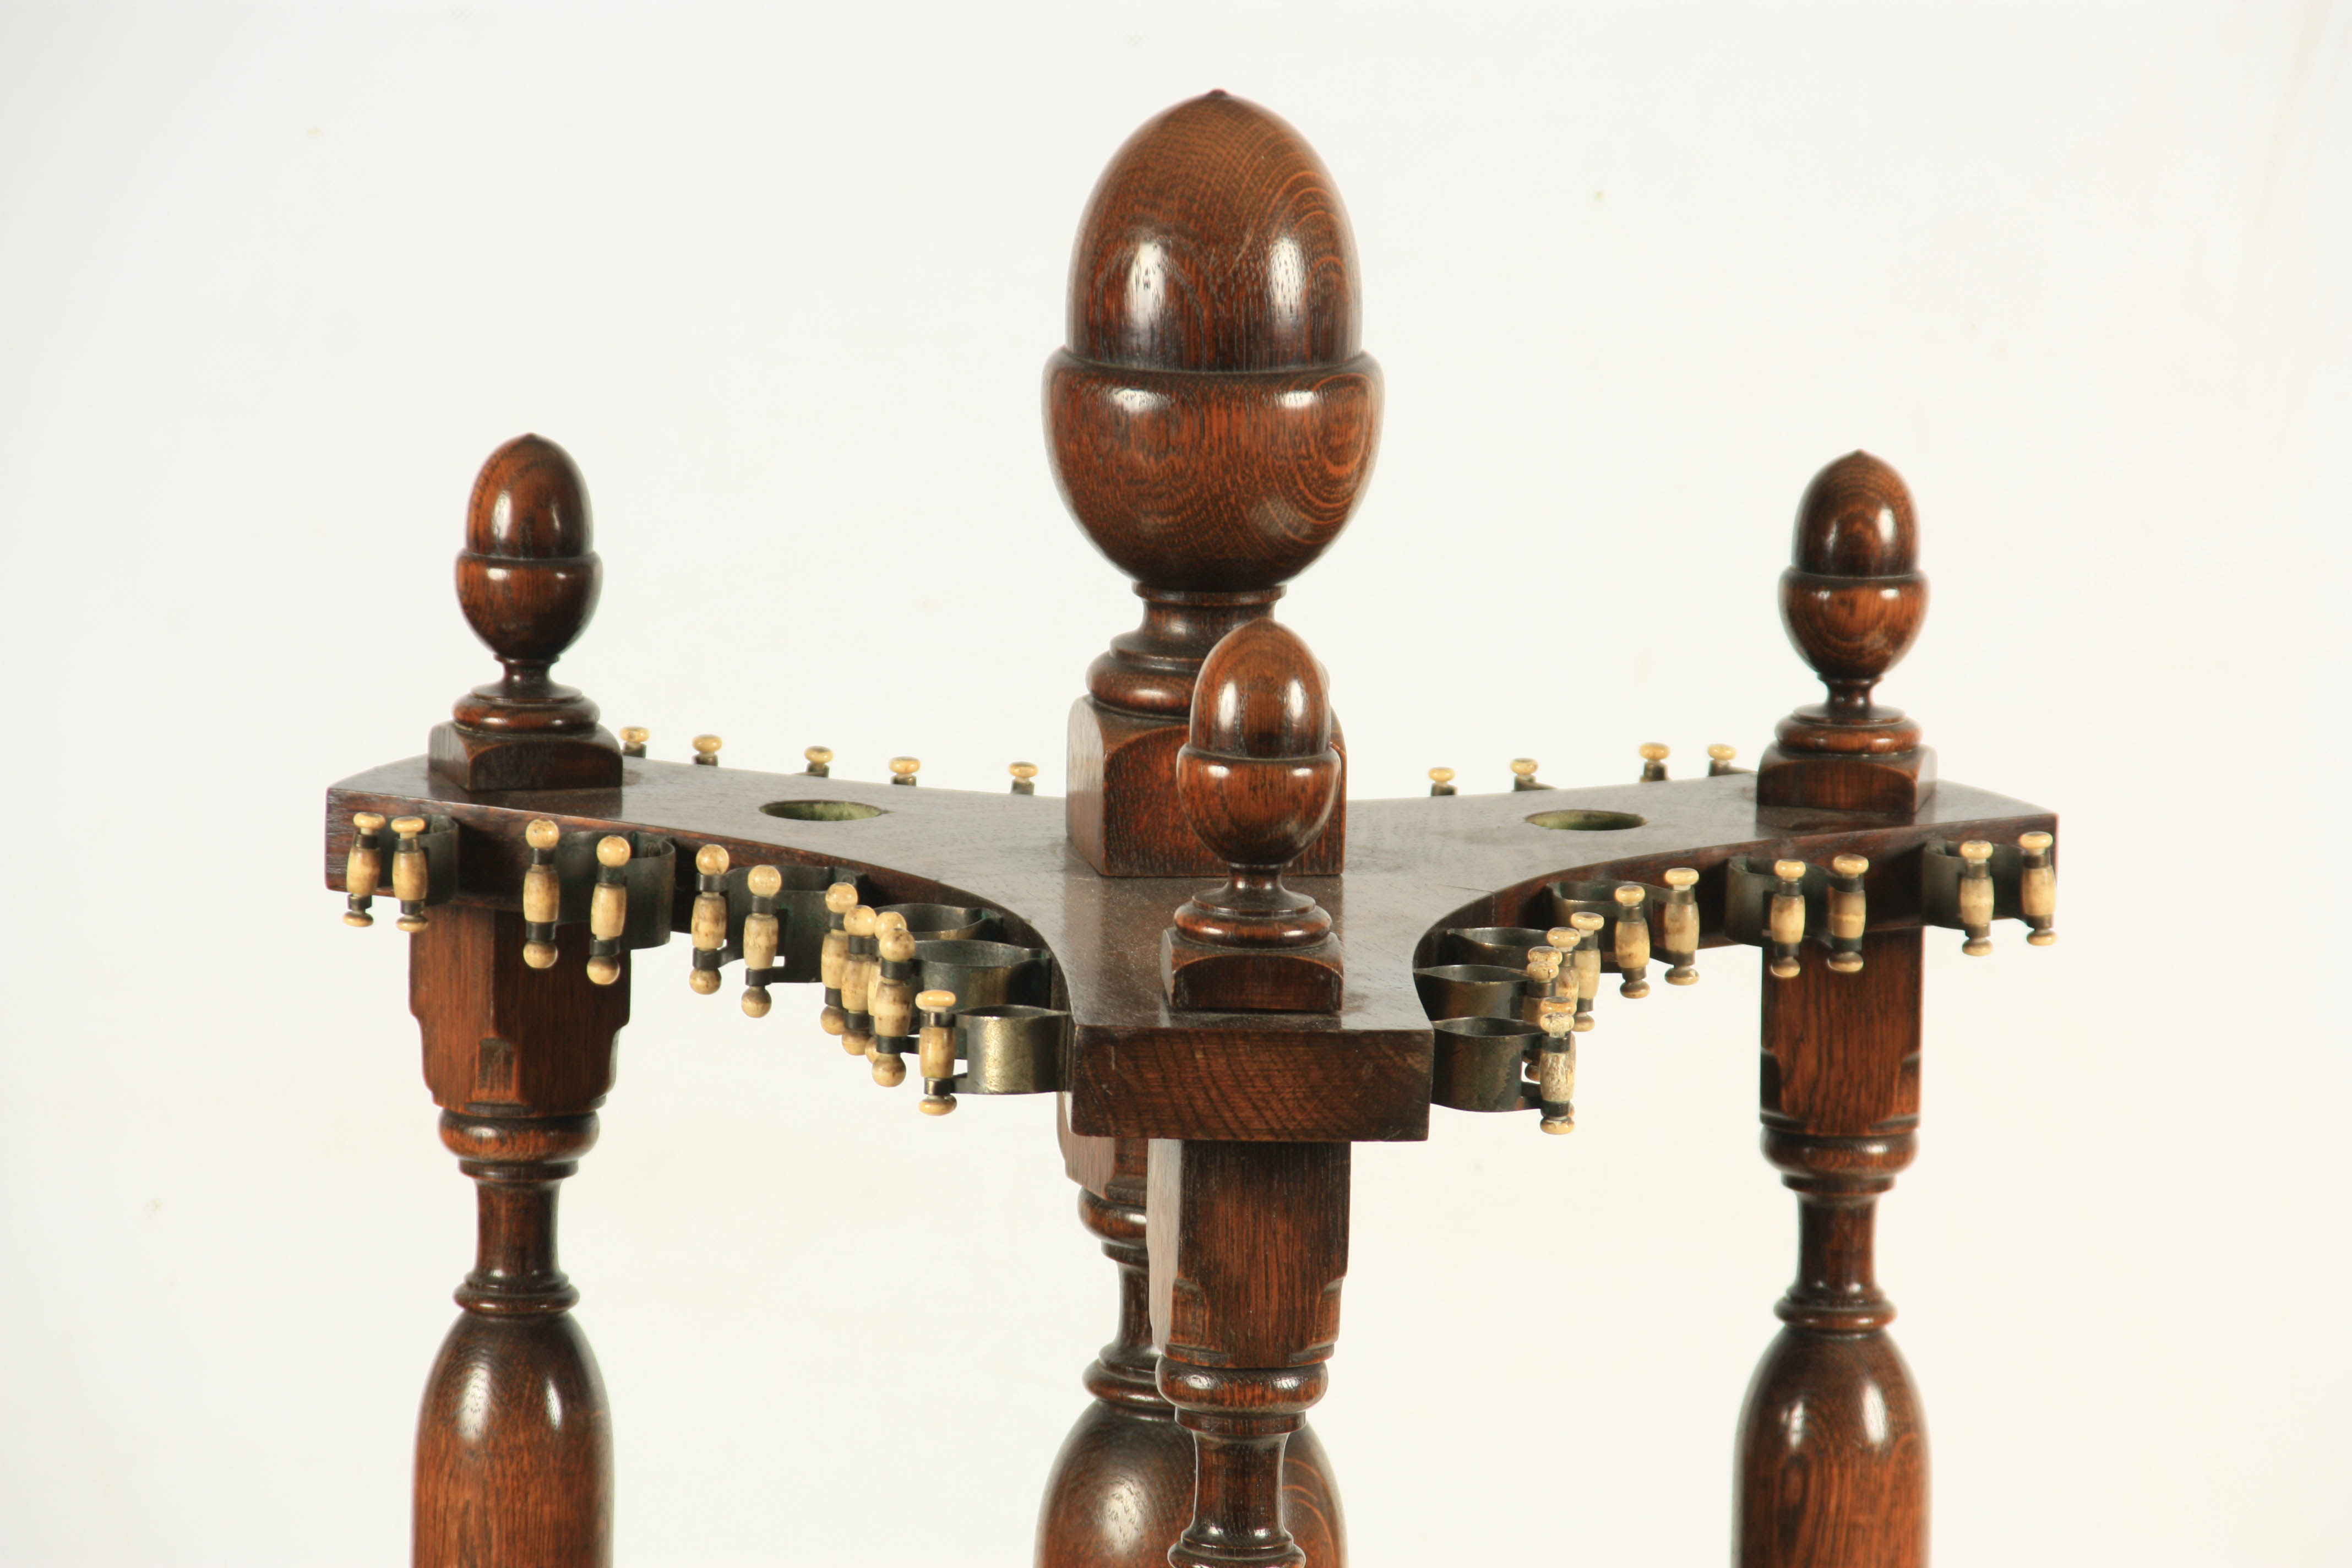 A LATE 19TH/ EARLY 20TH CENTURY REVOLVING OAK SNOOKER CUE STAND the circular base sitting on 3 bun - Image 3 of 5